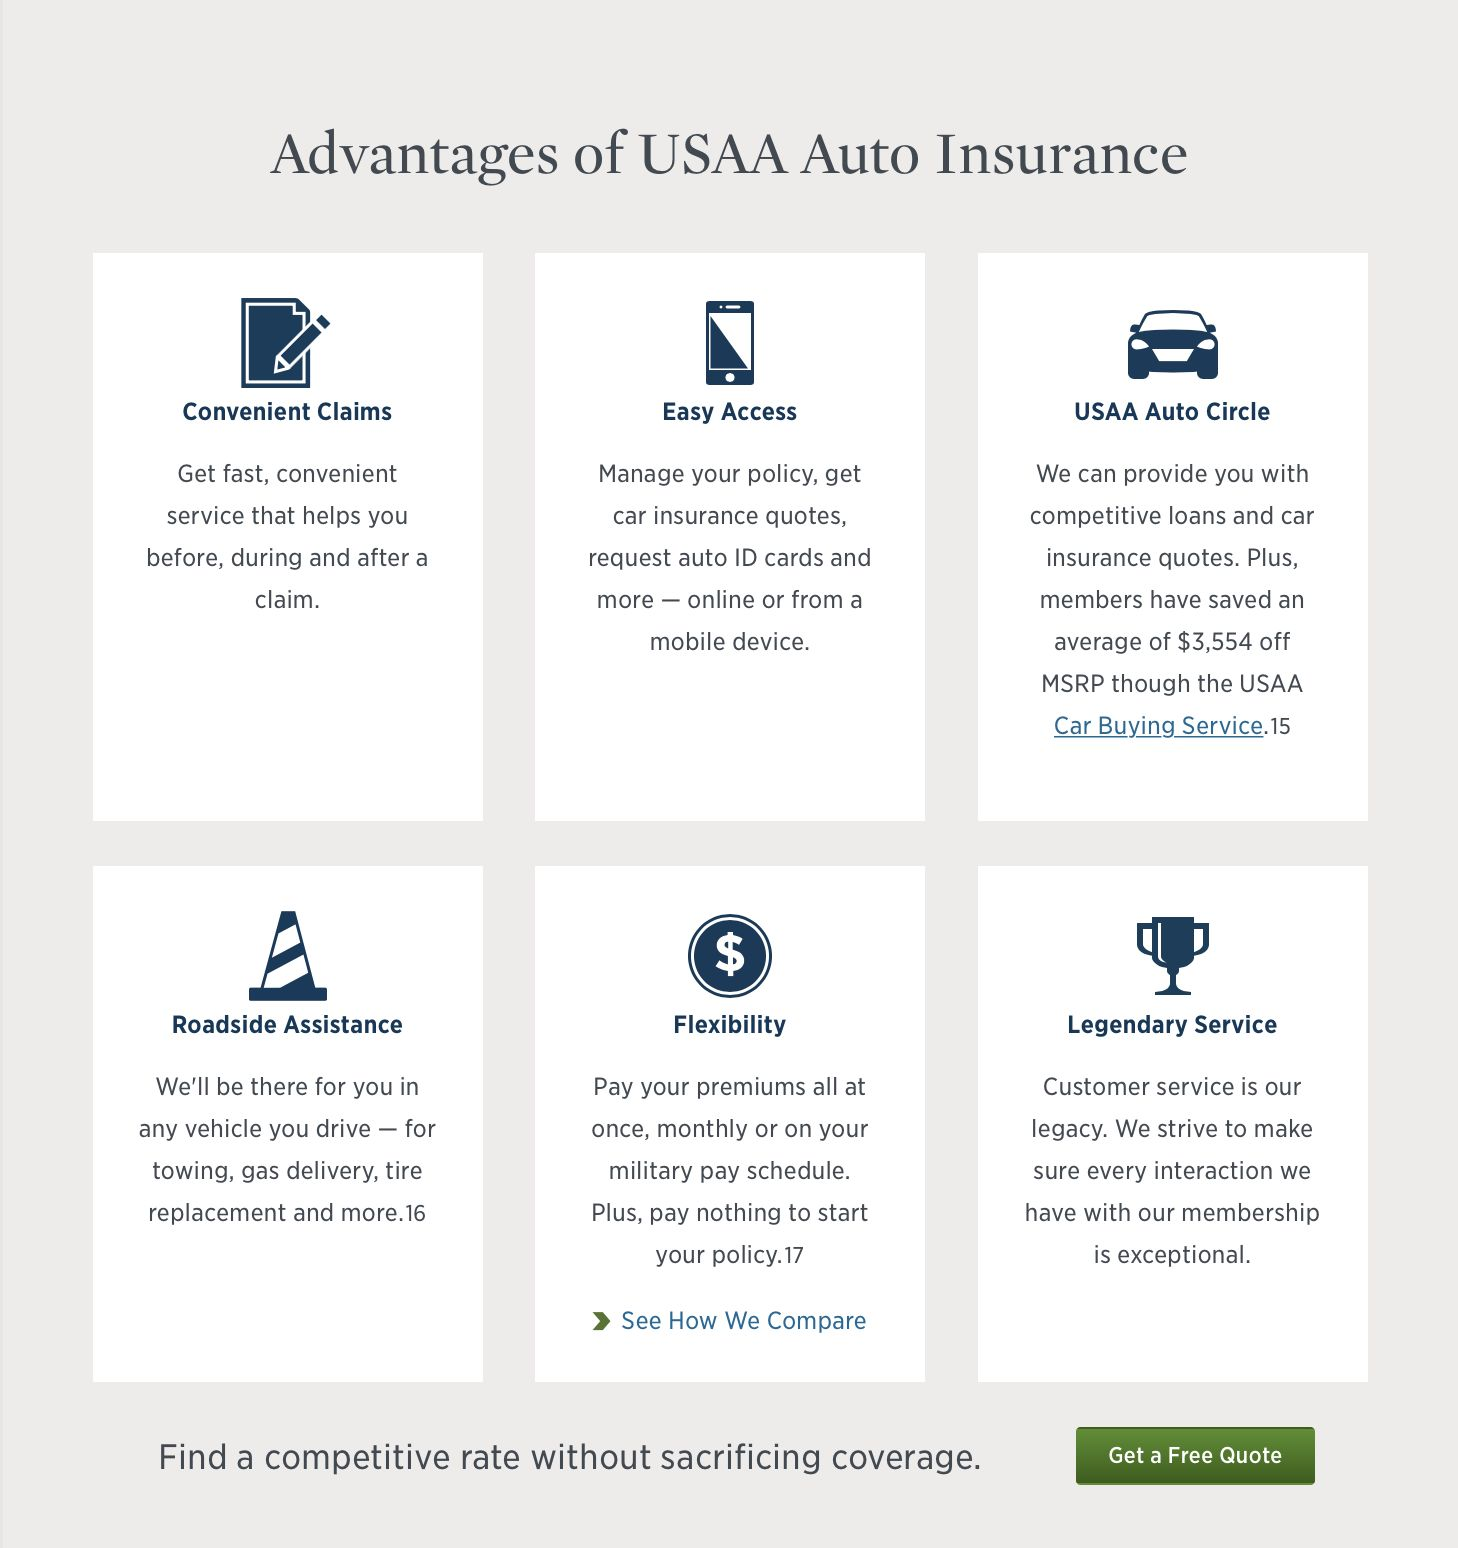 10 Simple Steps To Get A USAA Auto Insurance Quote Online